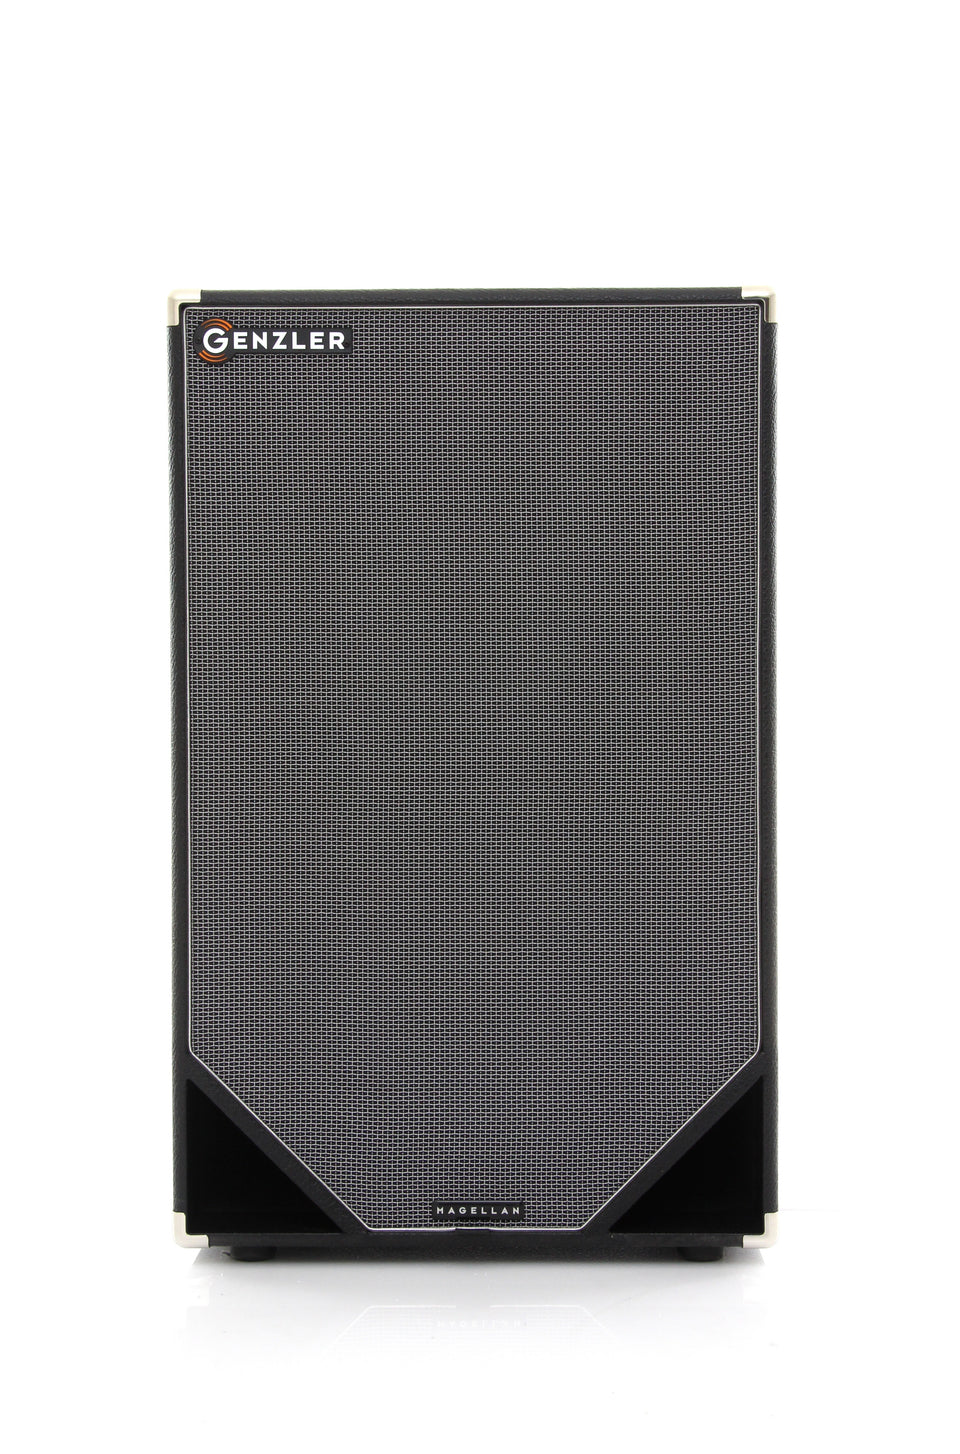 Genzler Amplification Magellan 212T Bass Cabinet